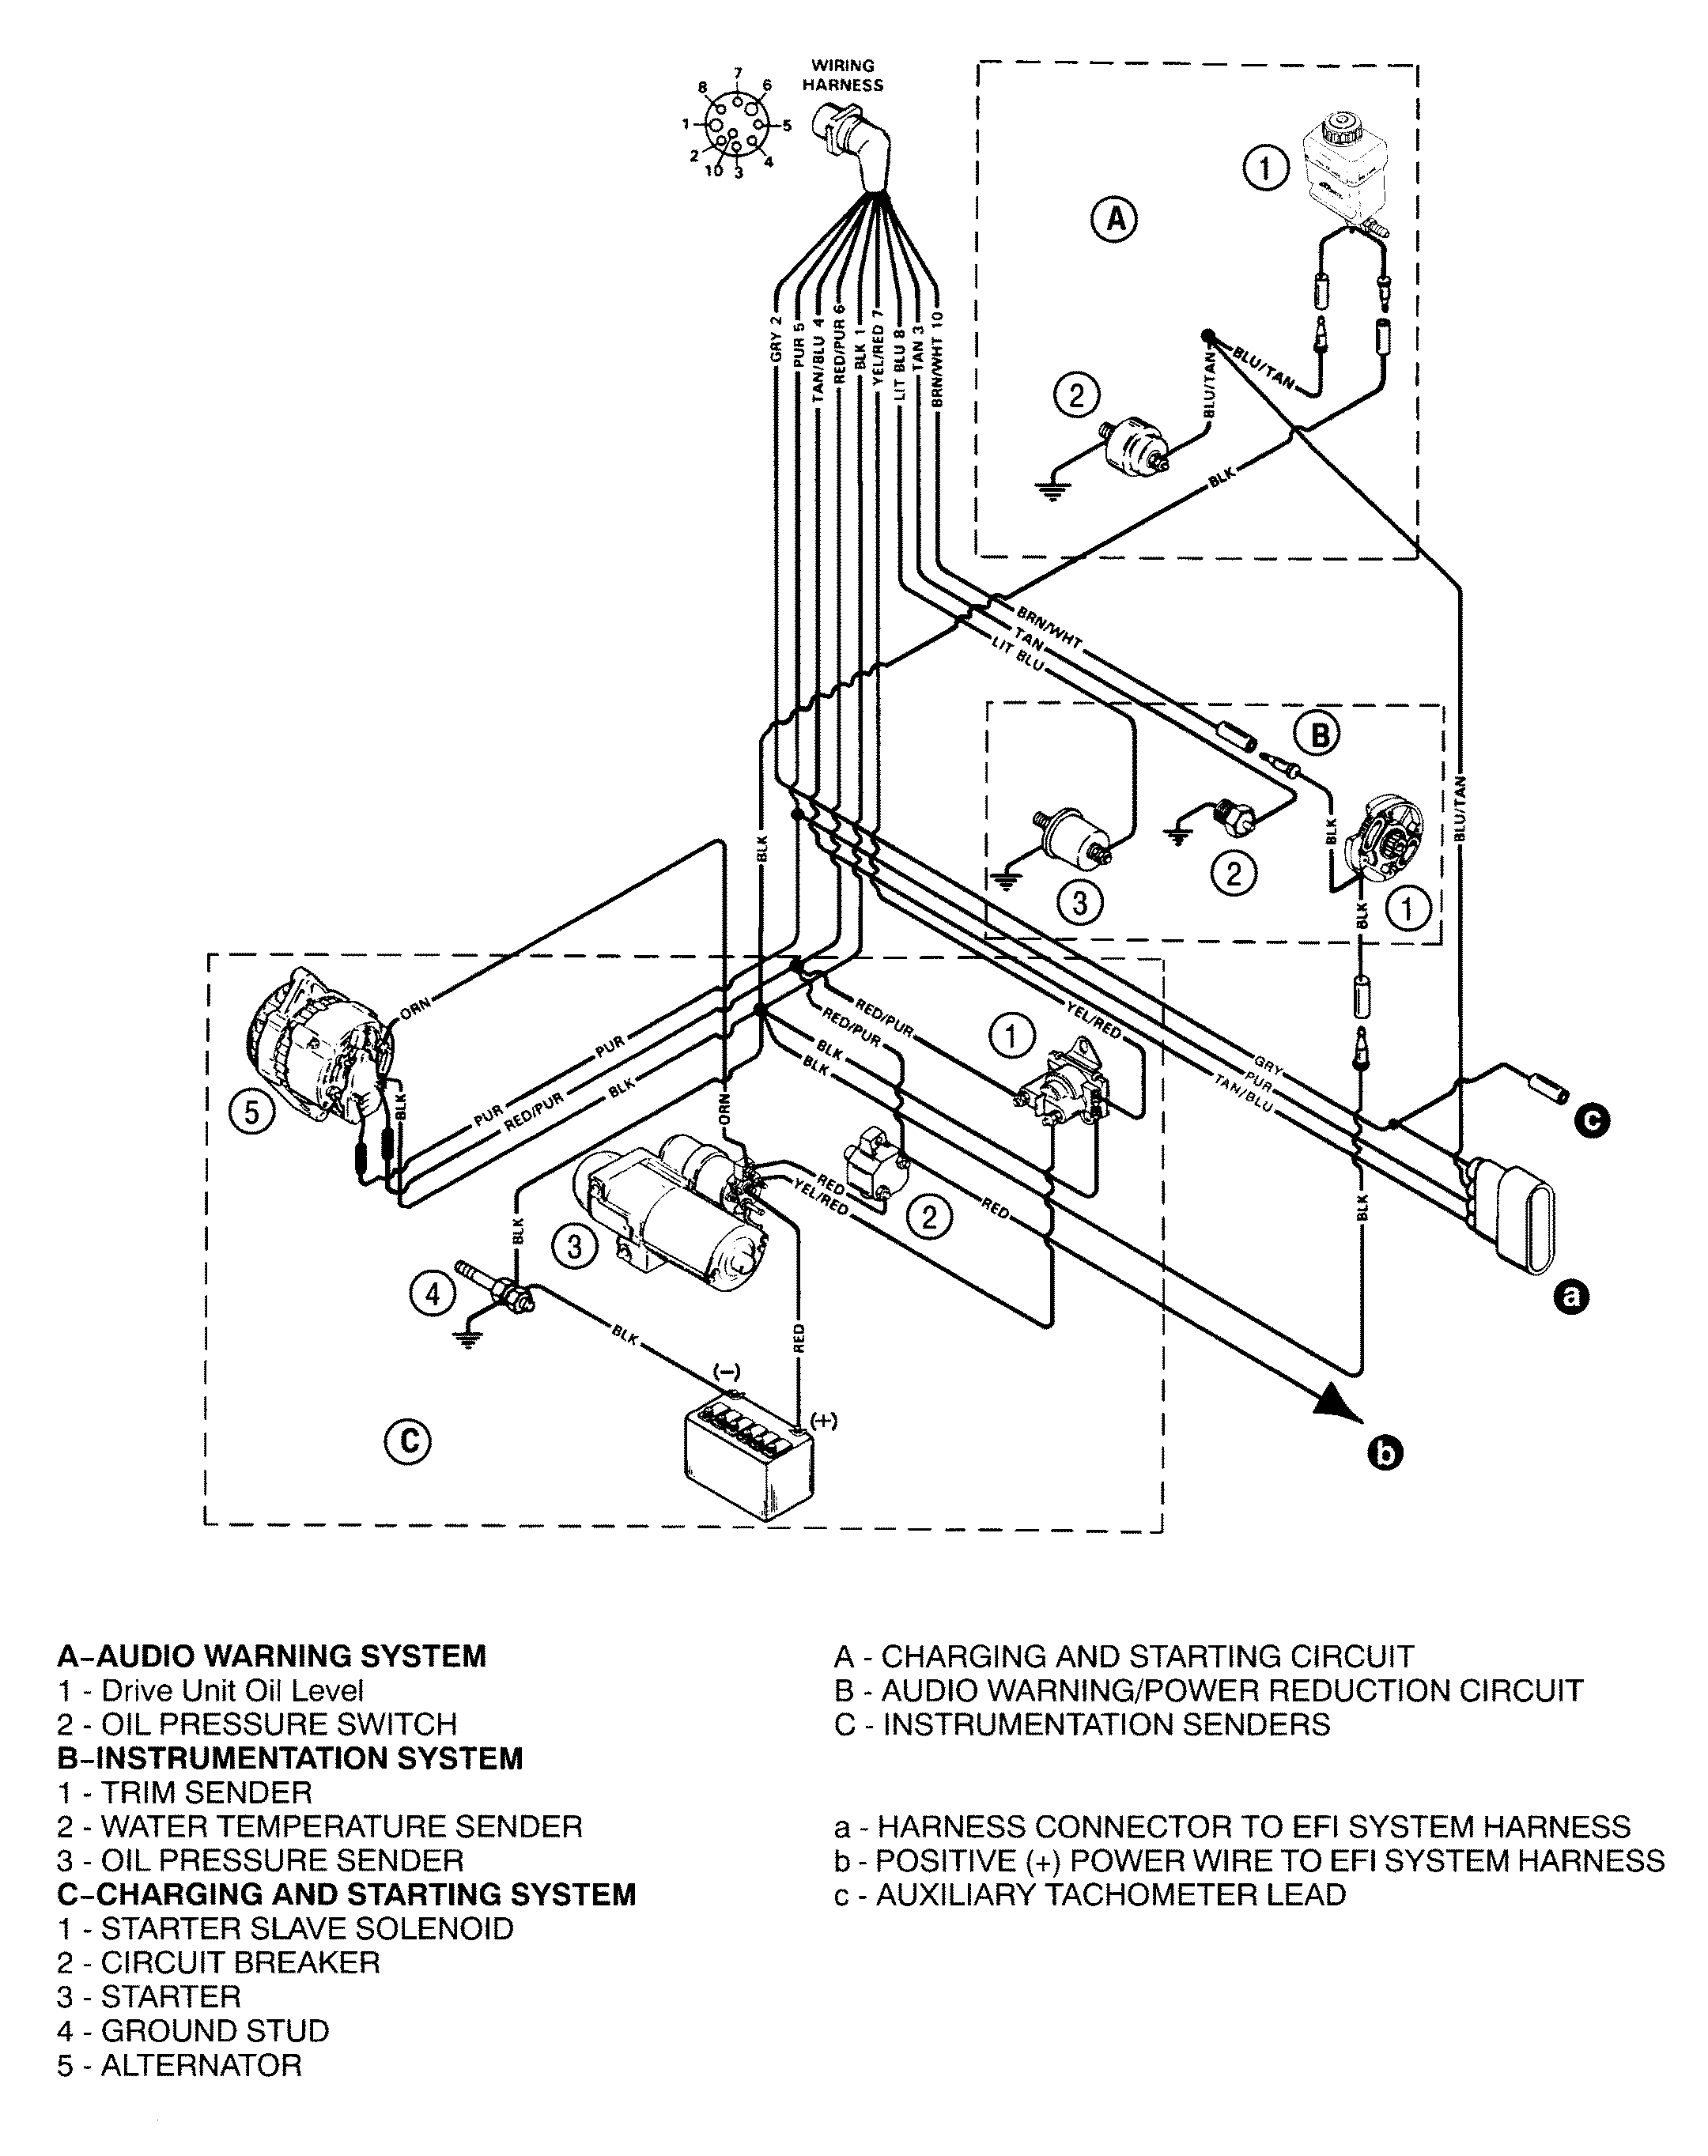 1987 Chevy Tbi Wiring Diagram from images.jamestowndistributors.com